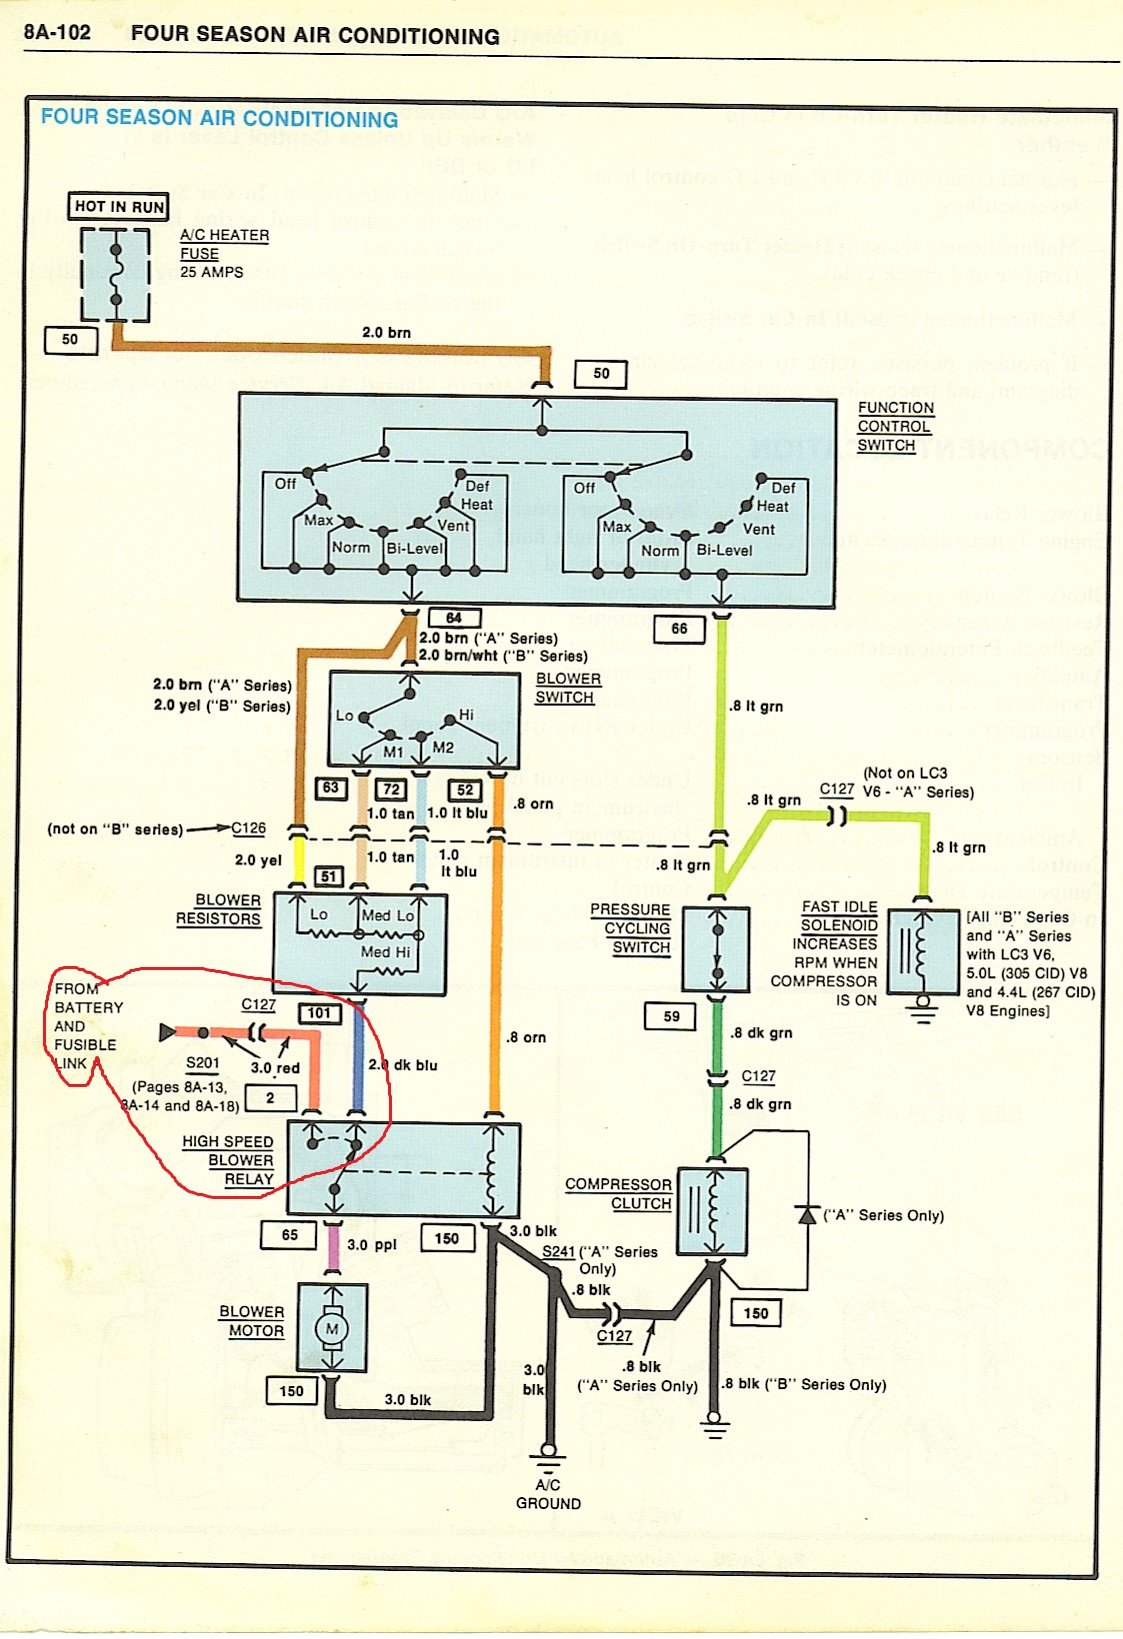 Wiring Diagram For 1986 Monte Carlo Ss - Wiring Diagram